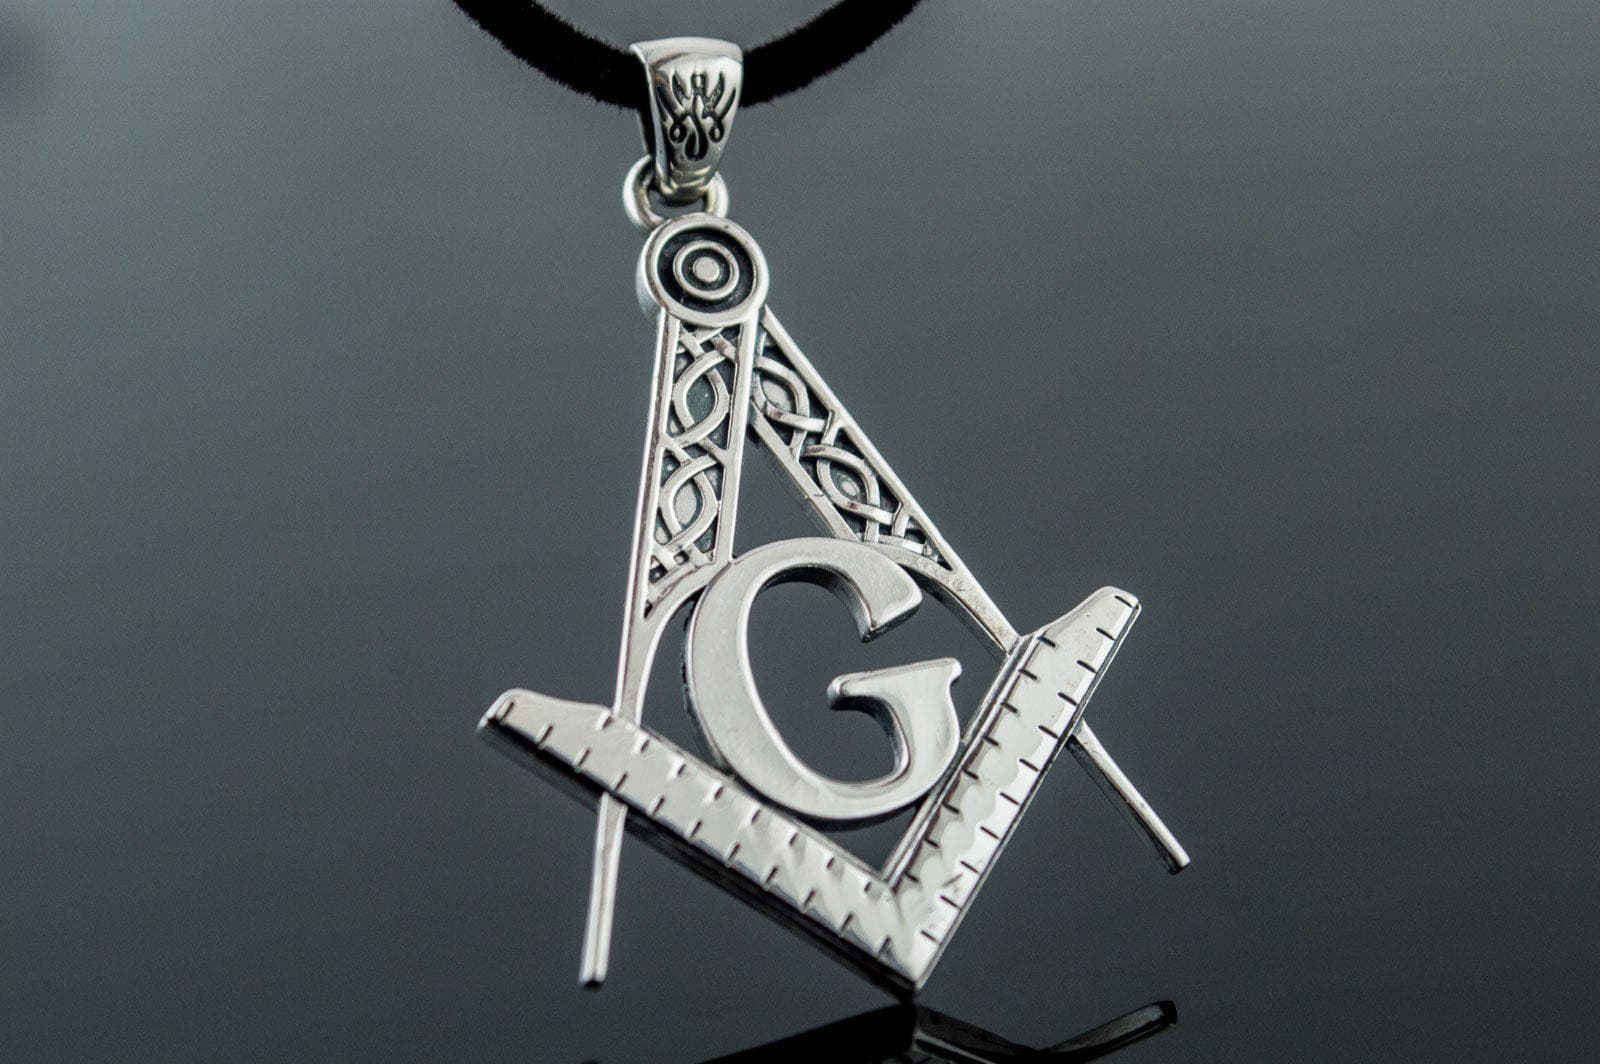 Pendants & Necklaces Masonic Square & Compass Sterling Silver Handcrafted Pendant Ancient Treasures Ancientreasures Viking Odin Thor Mjolnir Celtic Ancient Egypt Norse Norse Mythology